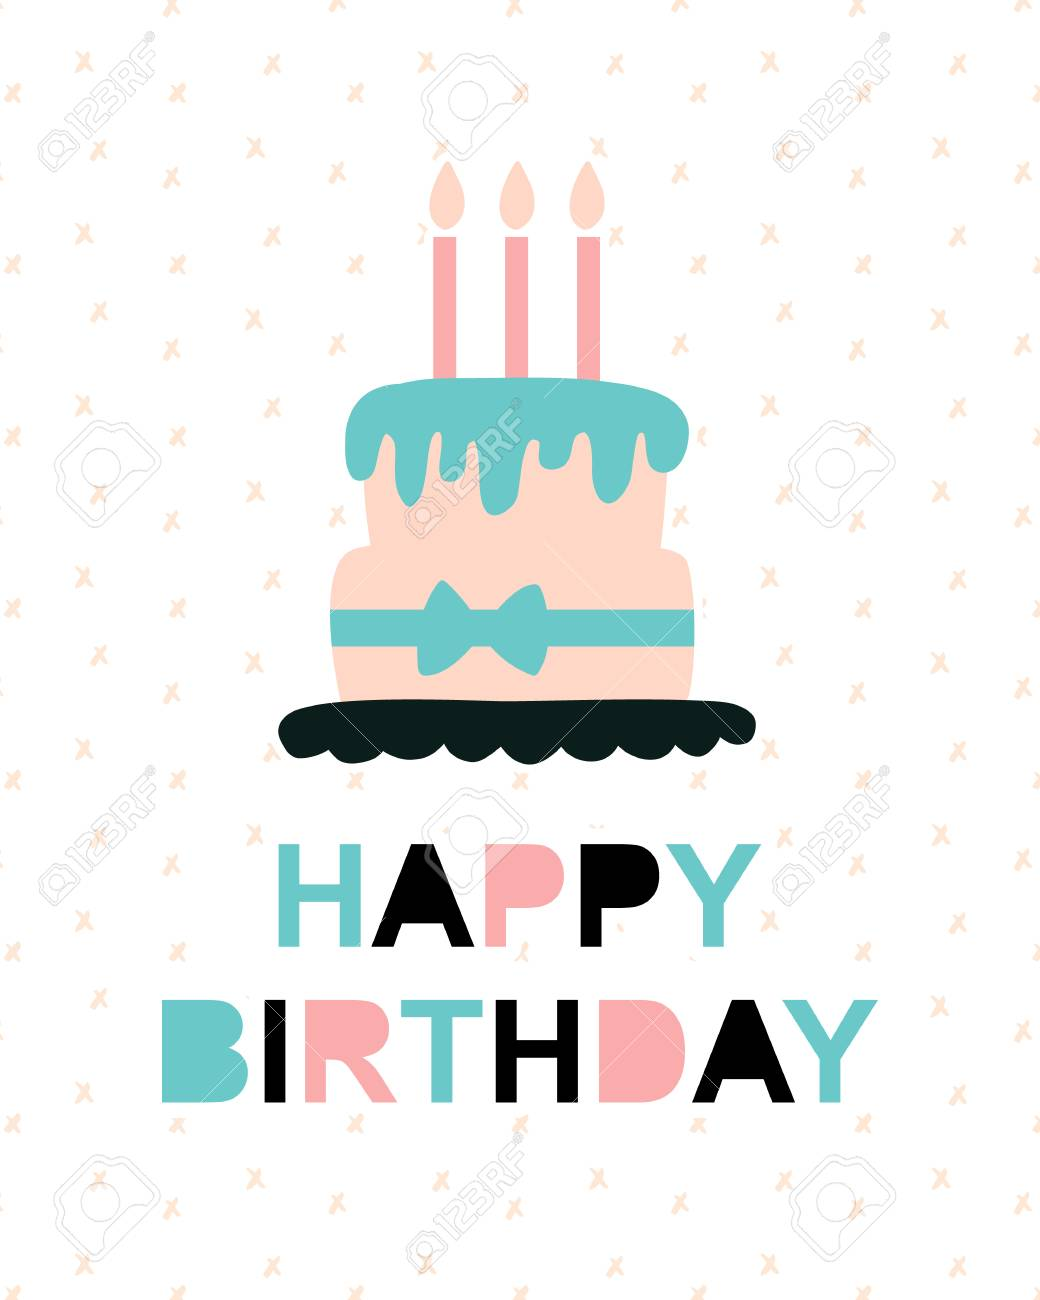 Happy Birthday Greeting Card Template Vector Illustration Of Cake With Candles Trendy Typography Design